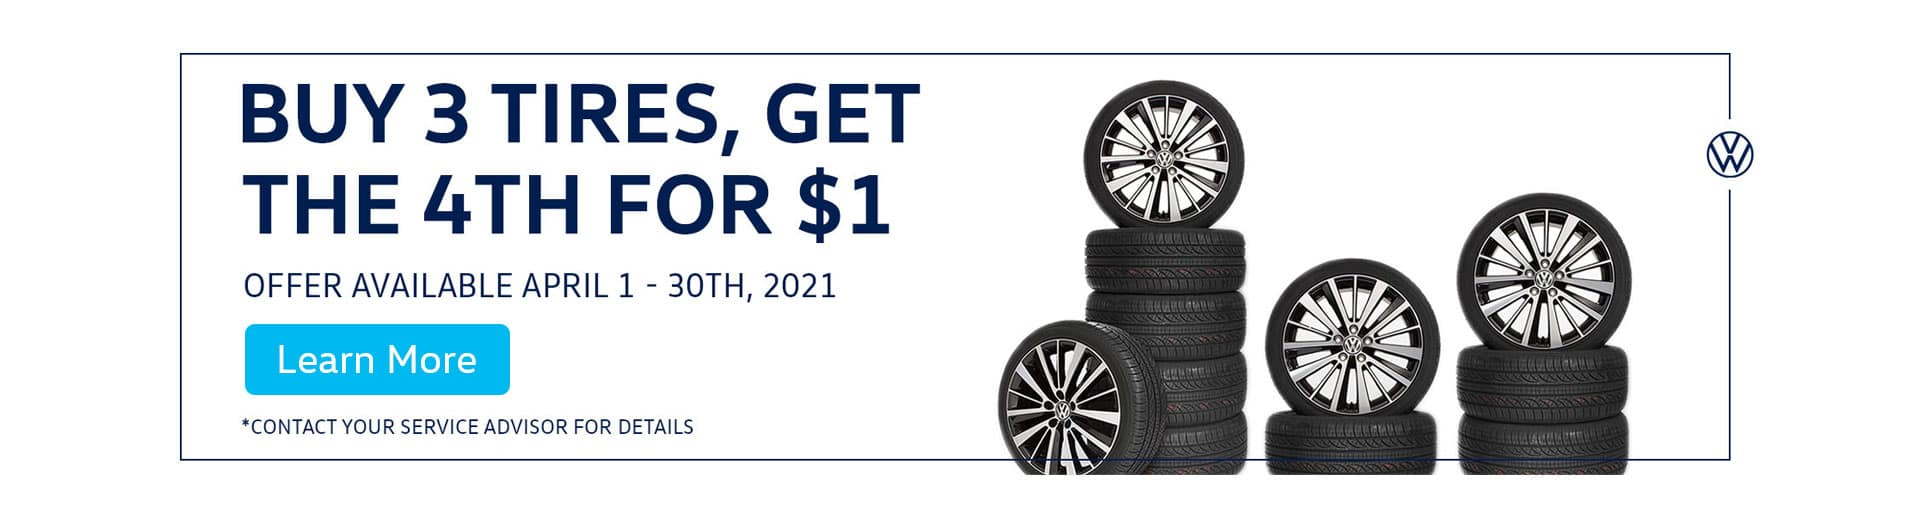 VW-tire-banner-B3G1-USE-THIS-ONE-HP